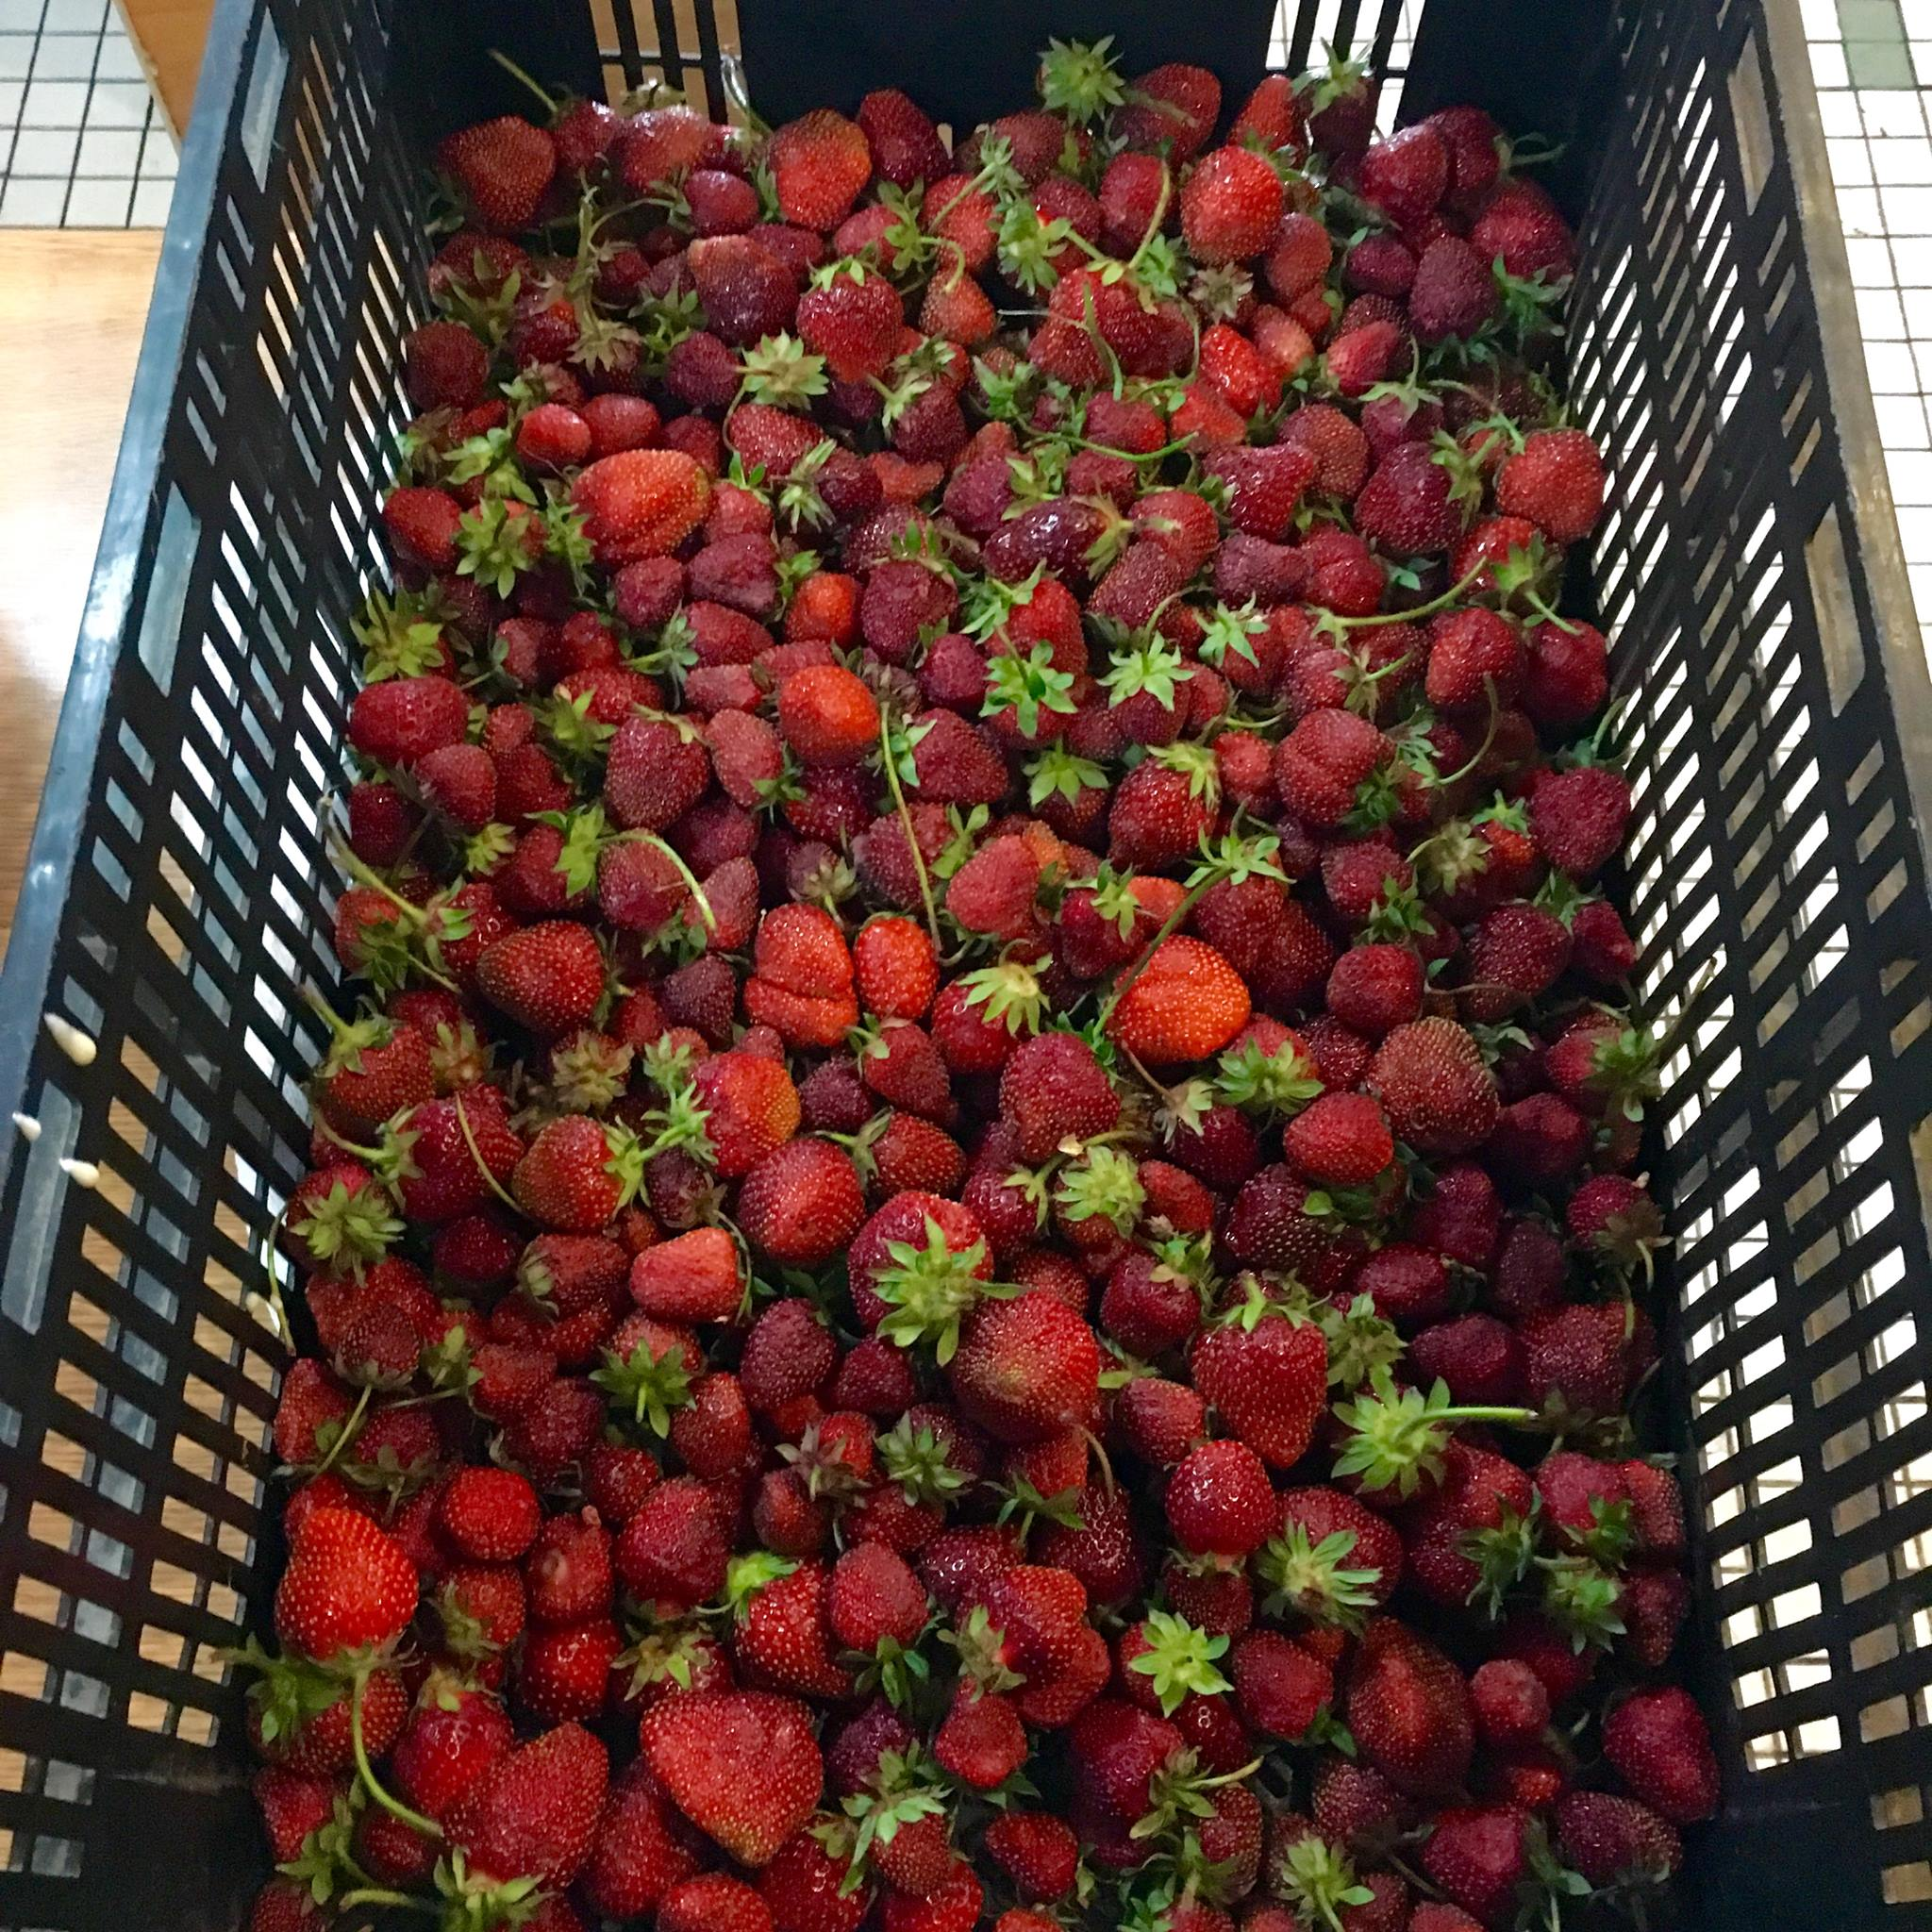 Detroit-grown strawberries from Buffalo St. Farm for Russell Street Deli's strawberry preserves.